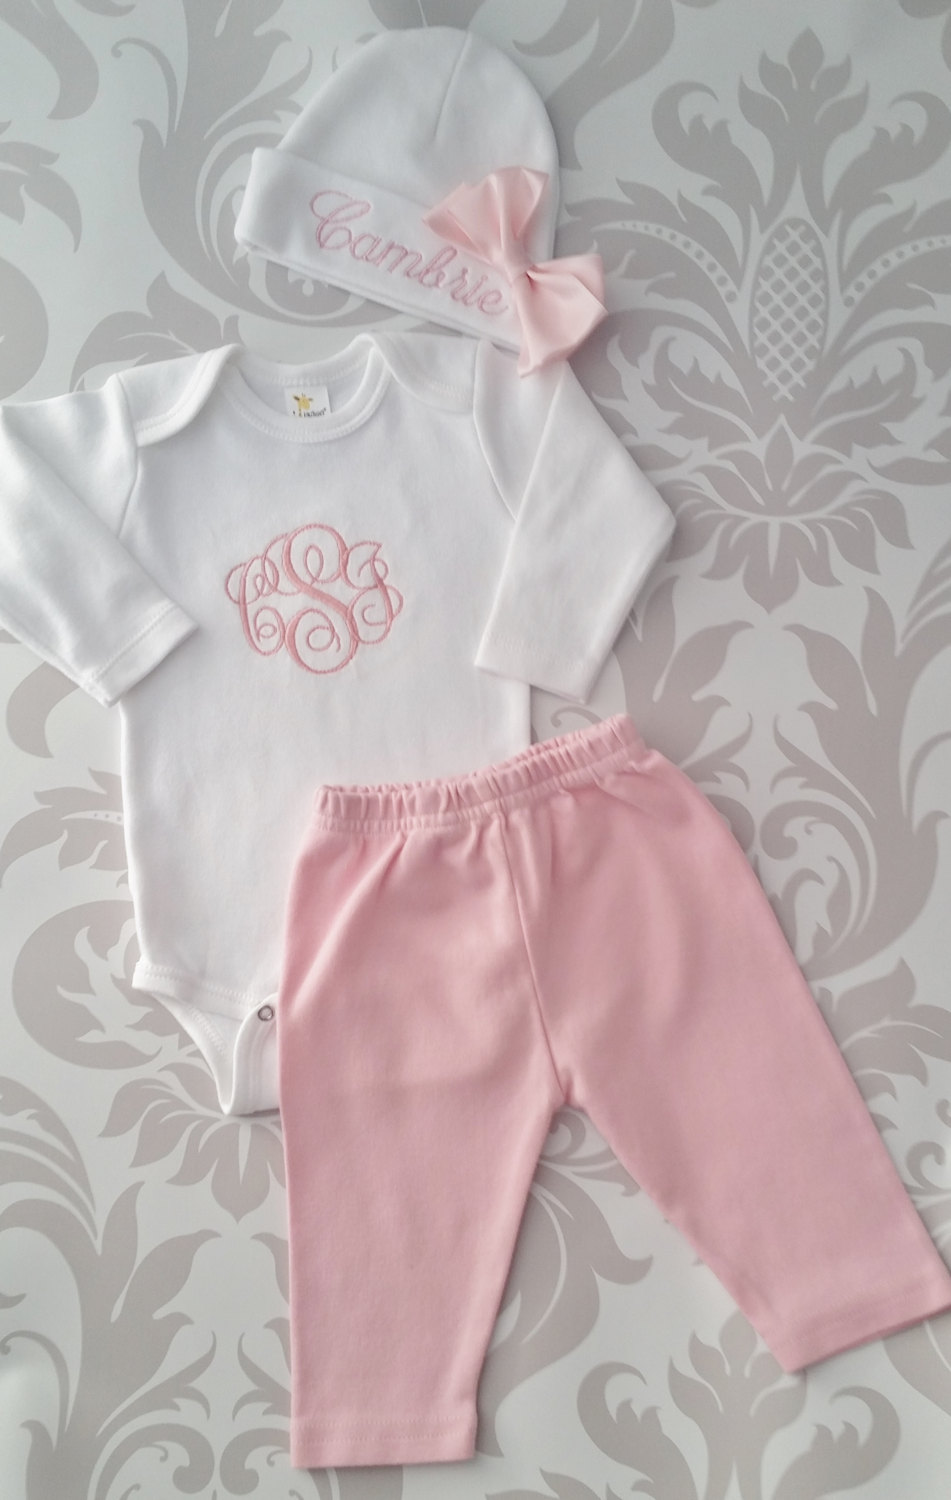 dabd223d879e0 Baby Girl Coming Home Outfit Newborn Baby Girl Personalized Outfit Baby Girl  Gift Baby Girl Take